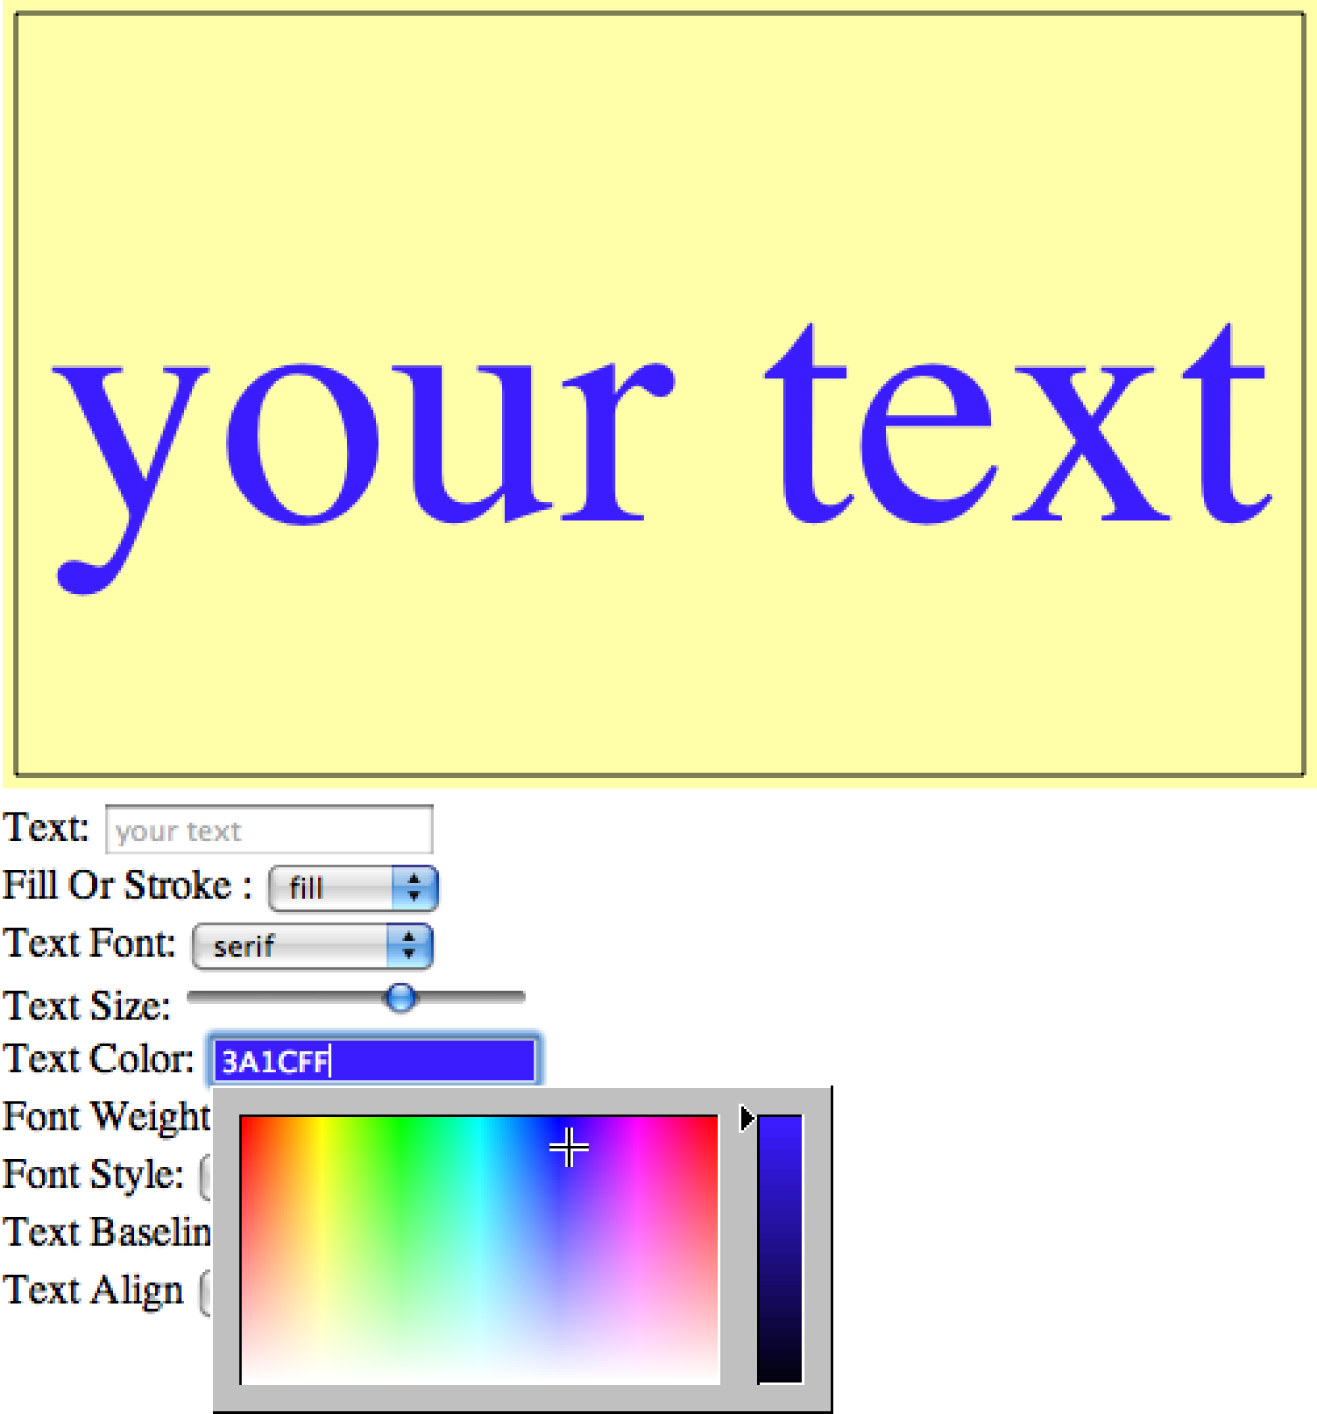 Setting the font color